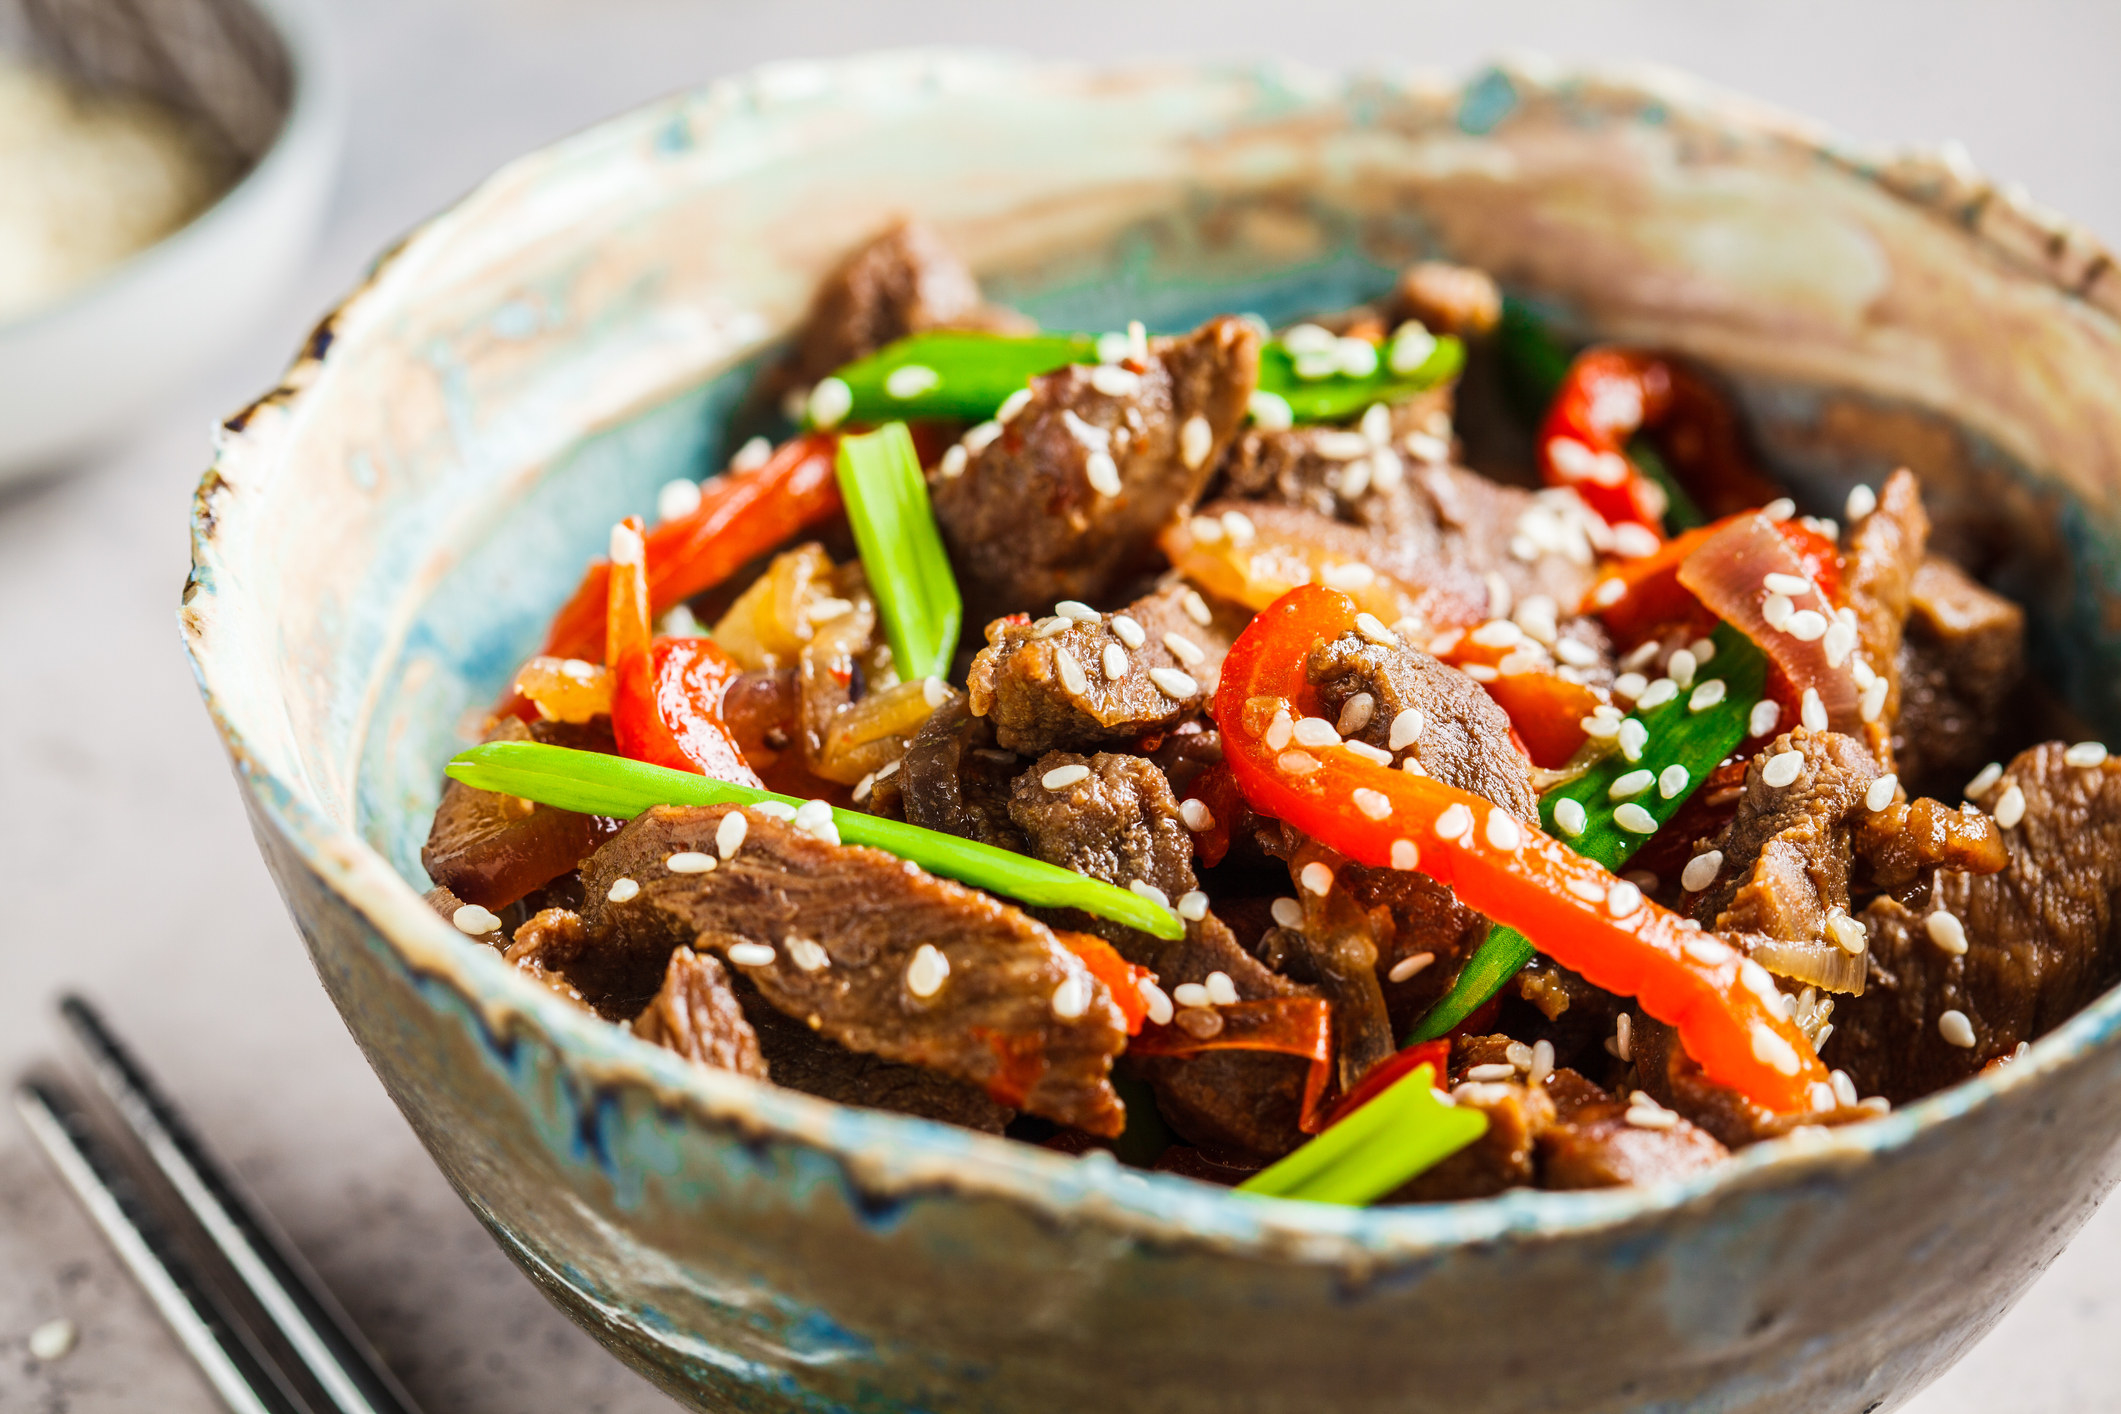 A bowl of steak stir fry with peppers.